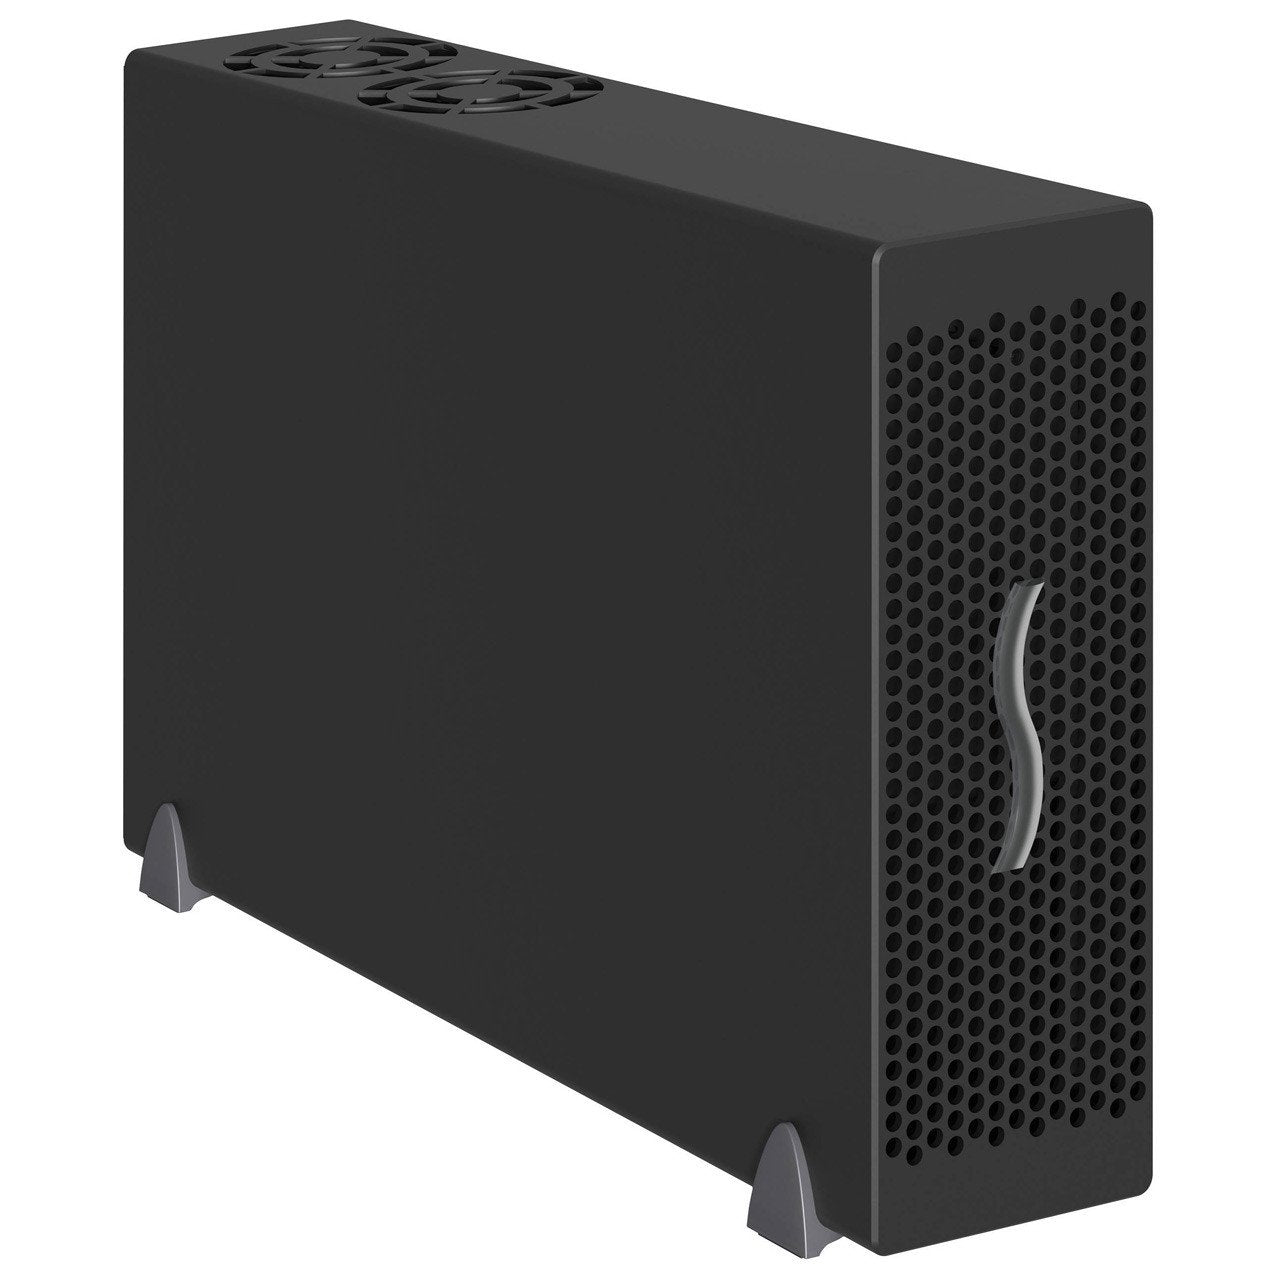 Sonnet Echo Express III-D Thunderbolt 2 Expansion System